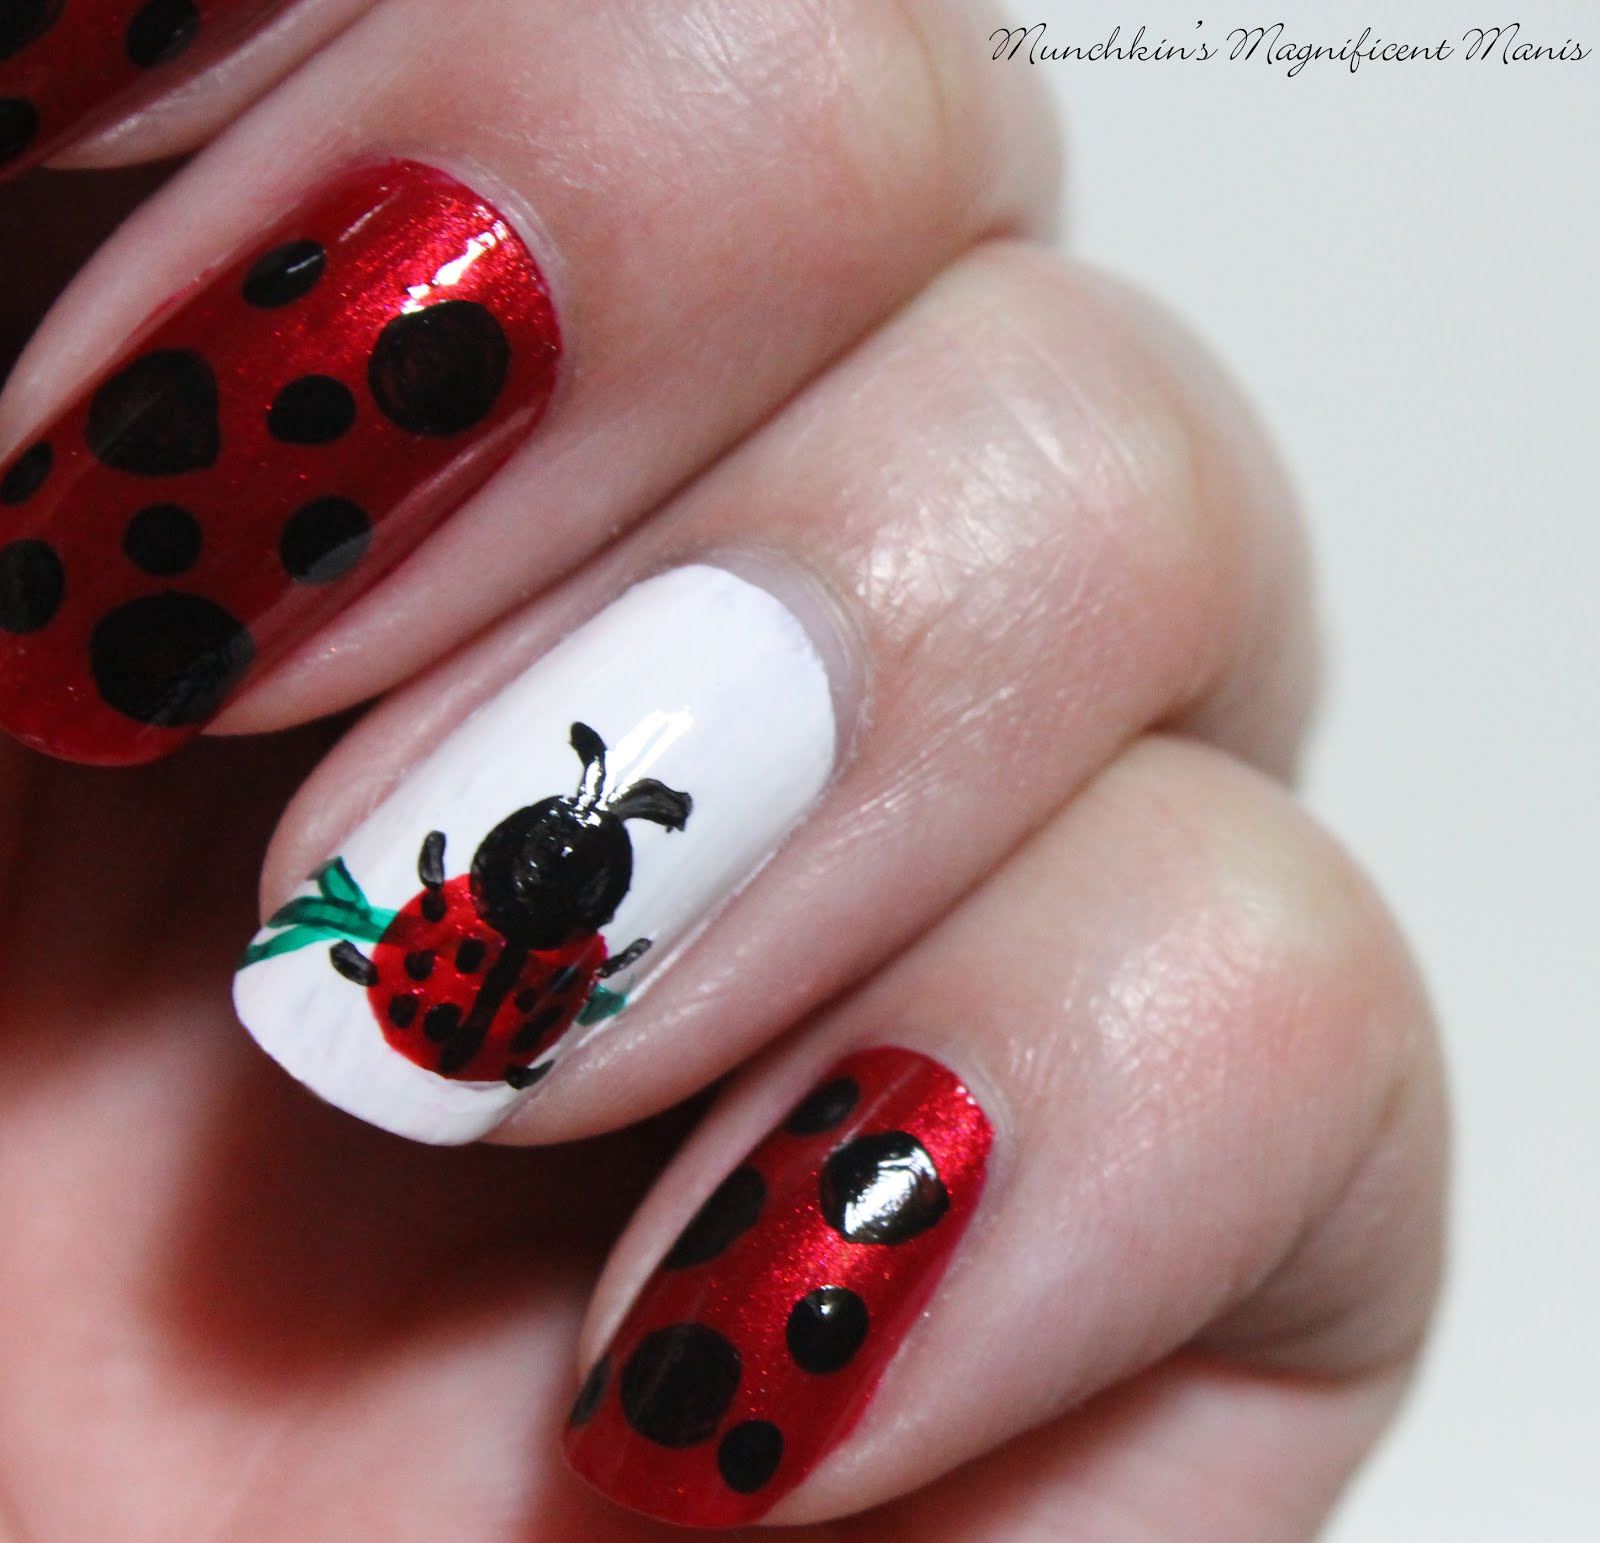 Munchkins Magnificent Manis Act Like A Lady Ladybug Nail Design